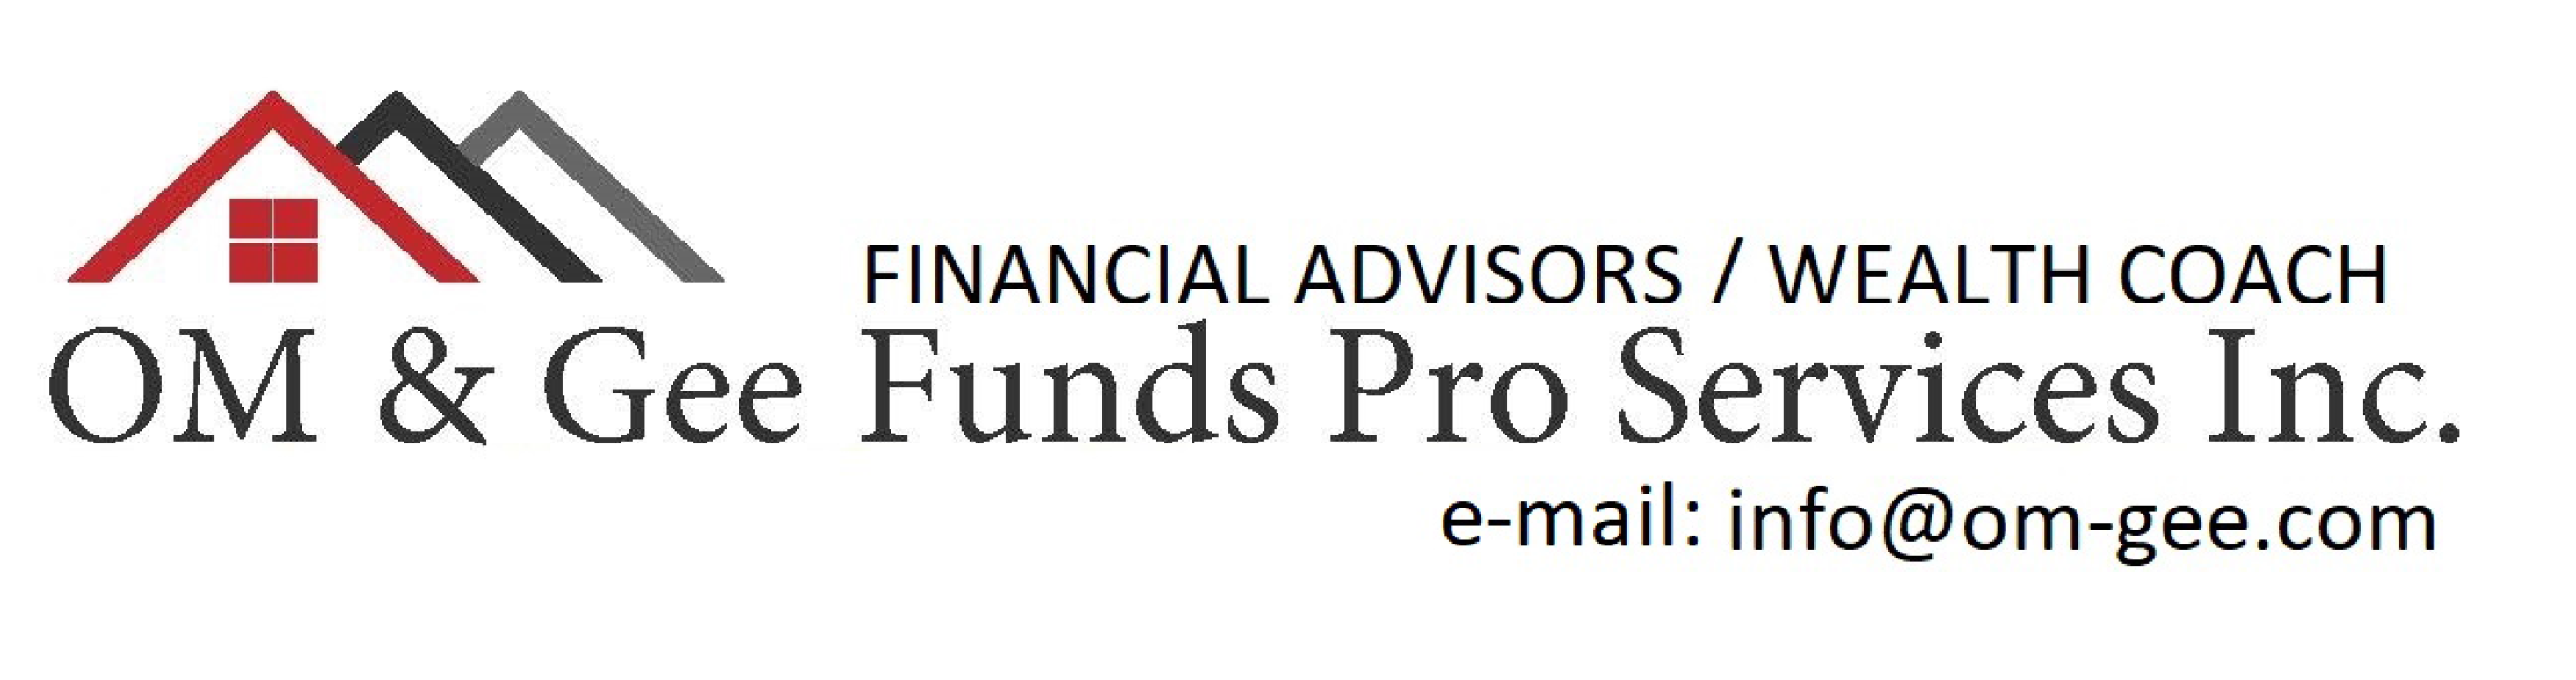 OM & Gee Funds Pro Services Inc.